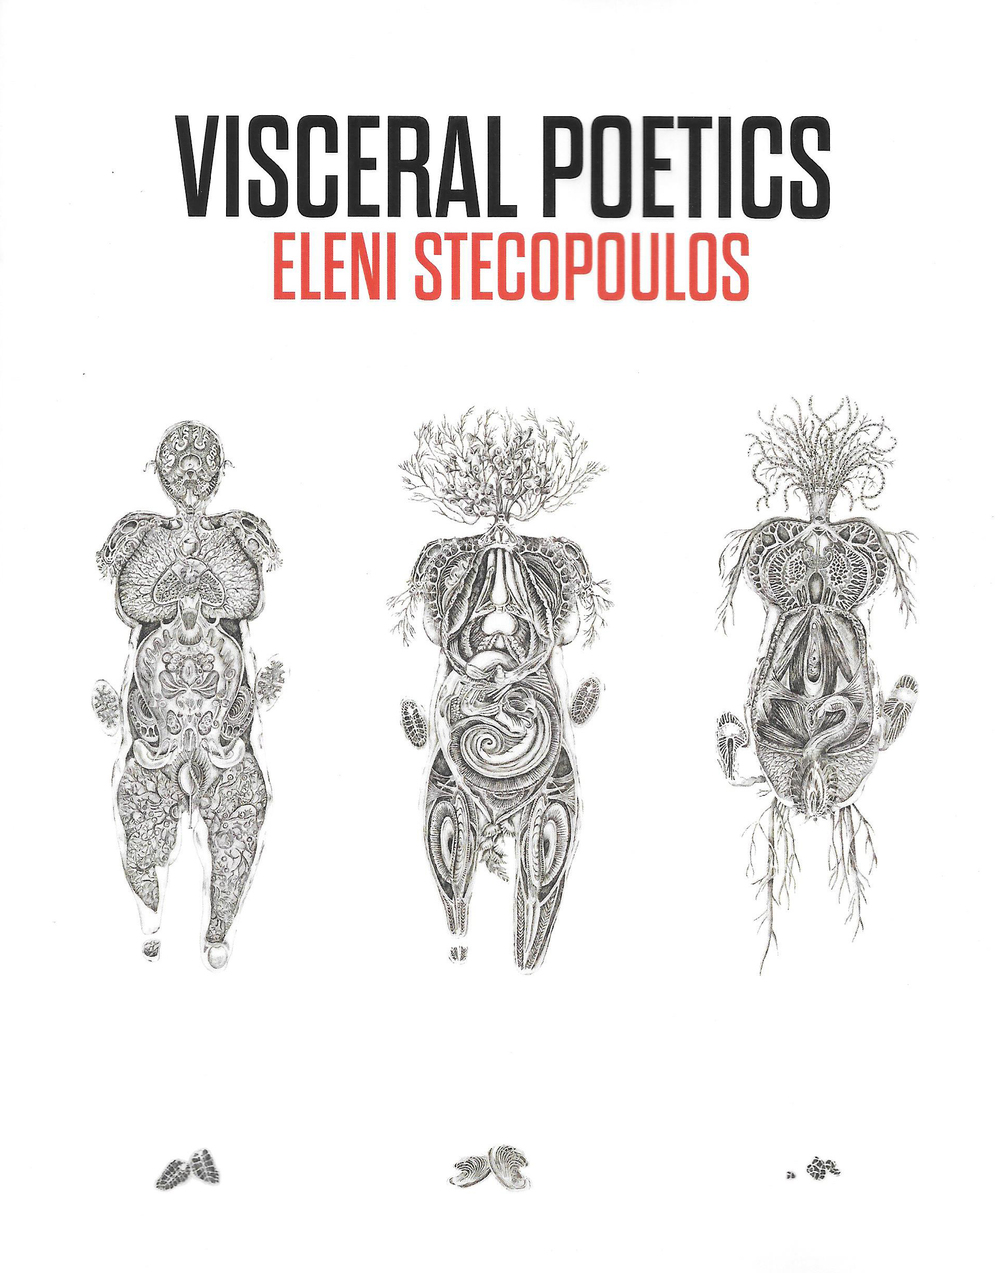 Visceral Poetics